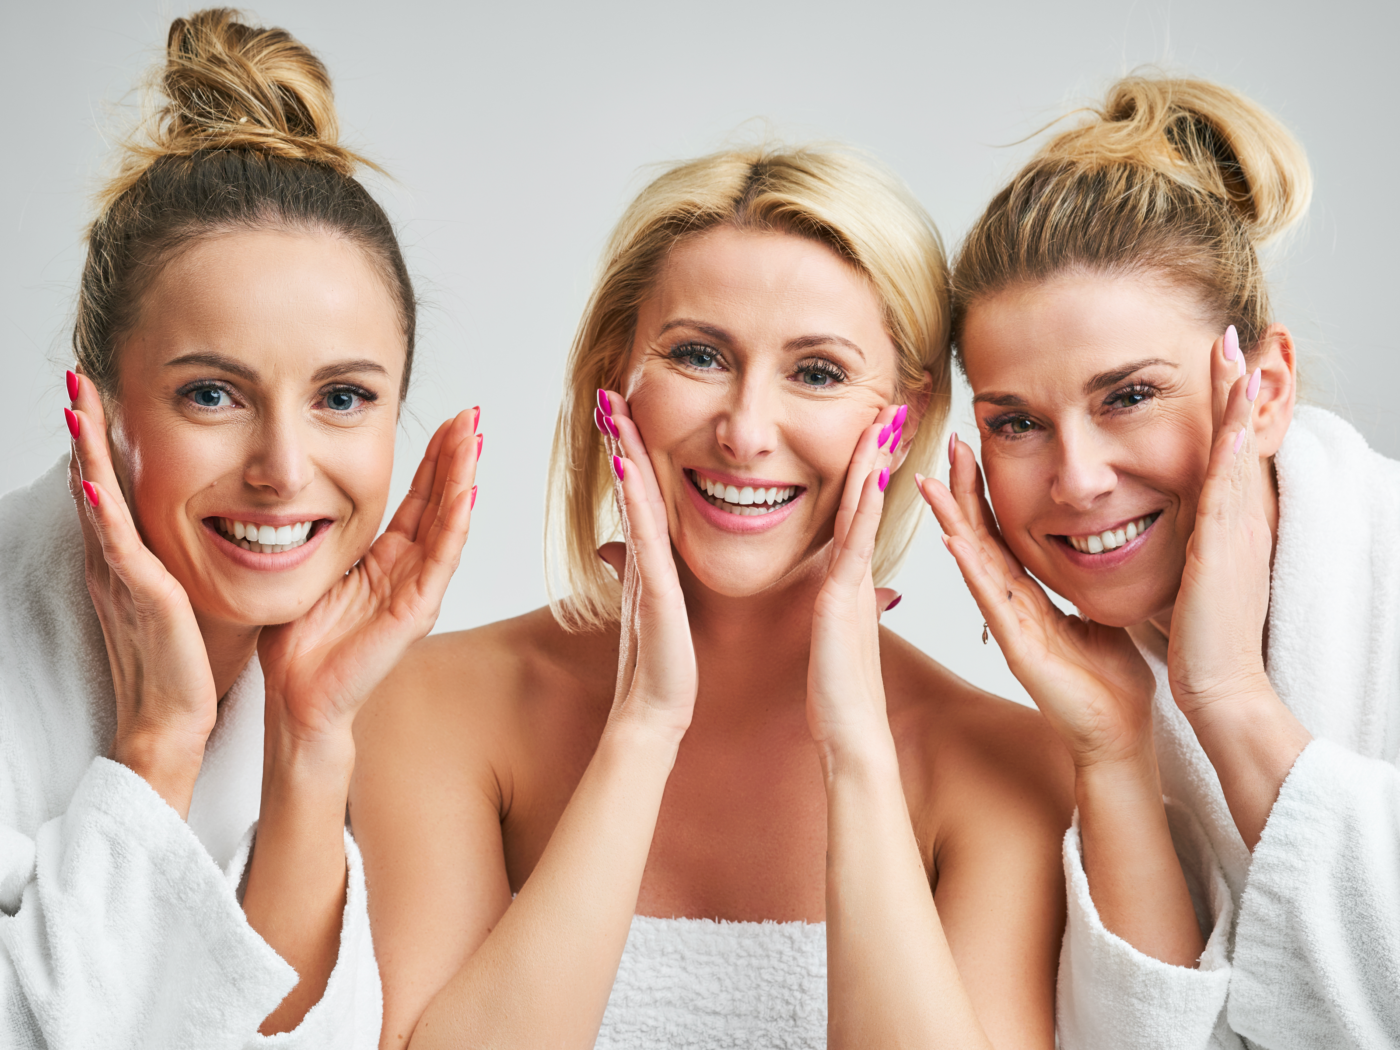 Skin Tightening for all ages